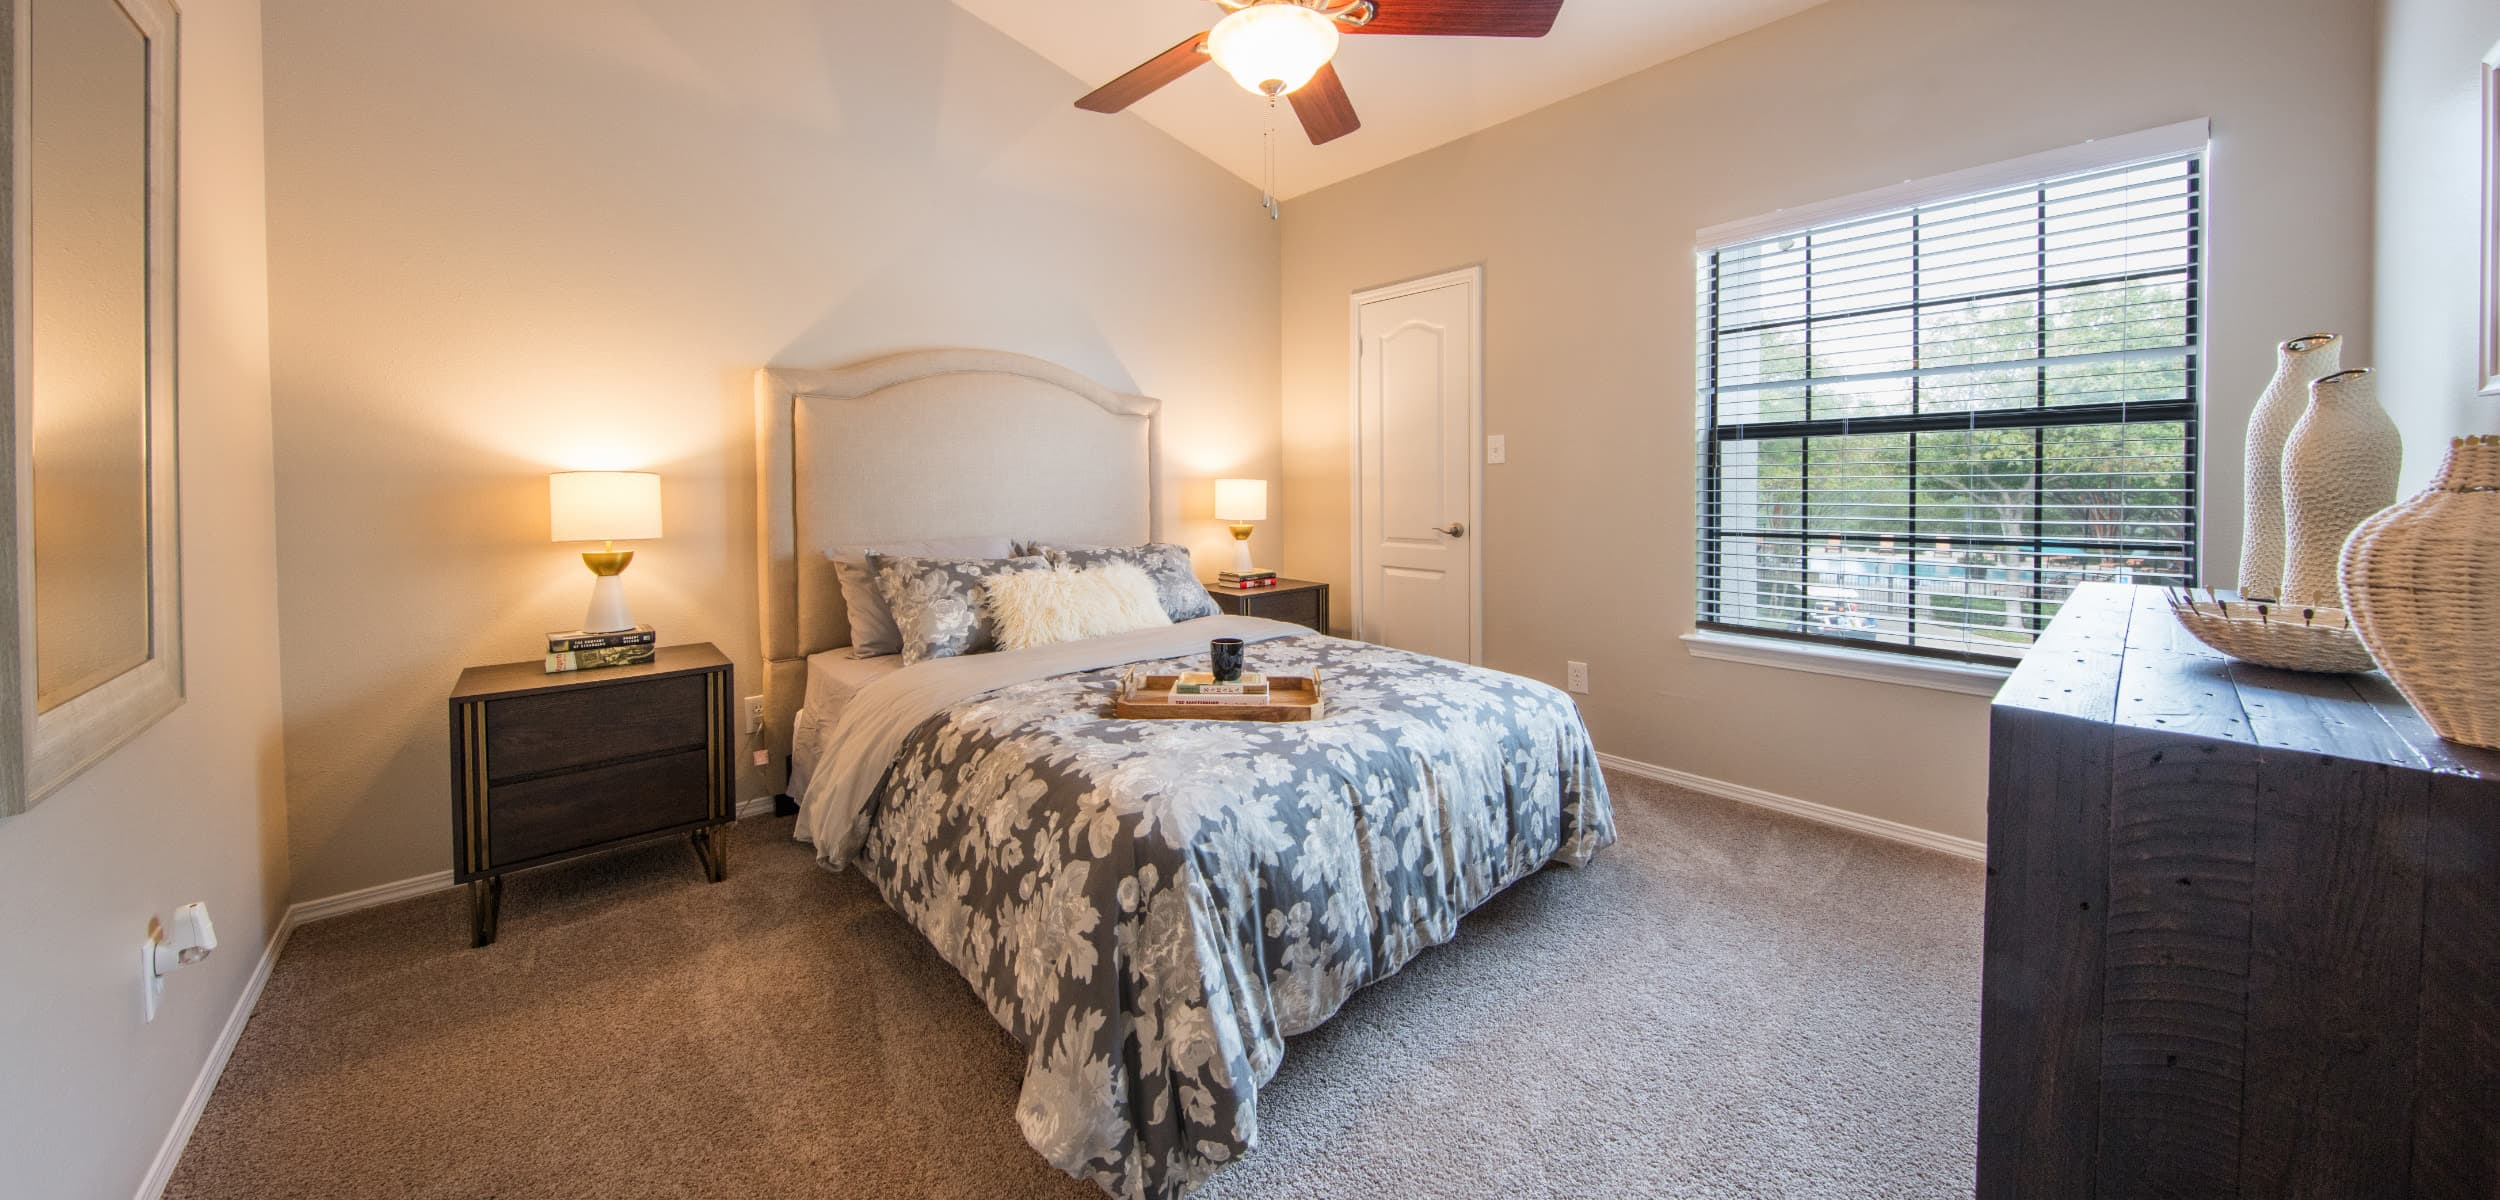 Bedroom with a large window at Marquis at Treetops in Austin, Texas